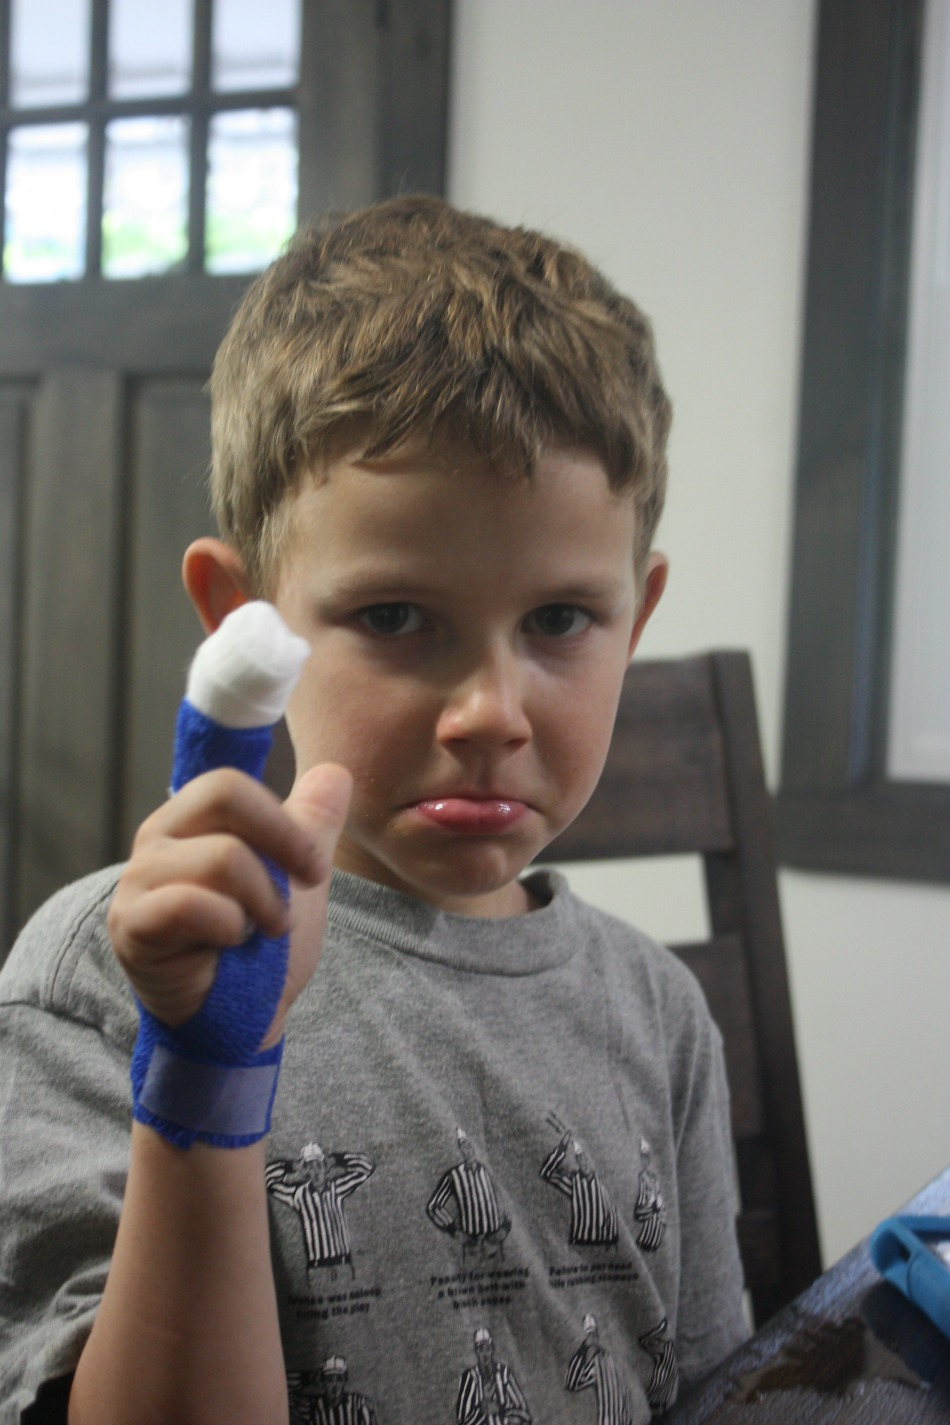 Mangled Fingers, ER Visits, And Herbal Wound Care | Growing Up Herbal | Today I'm sharing how my kiddo cut his finger off and how we're managing the wound with herbs.